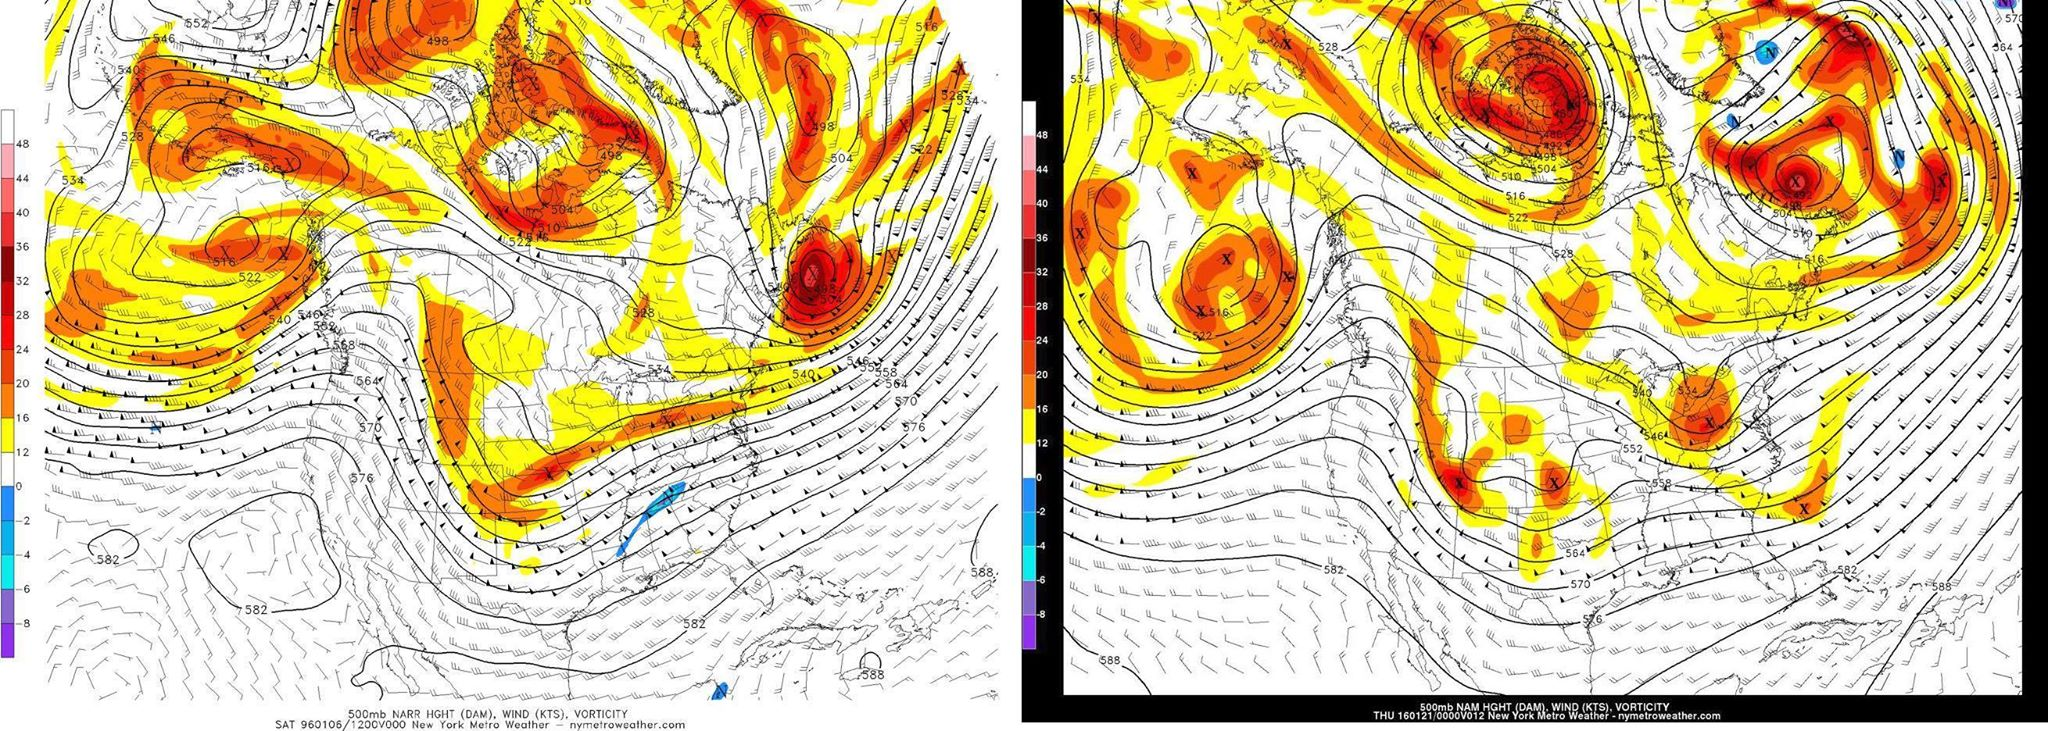 The mid level atmospheric pattern prior to the Blizzard of 1996 (left) and 2016 (right).